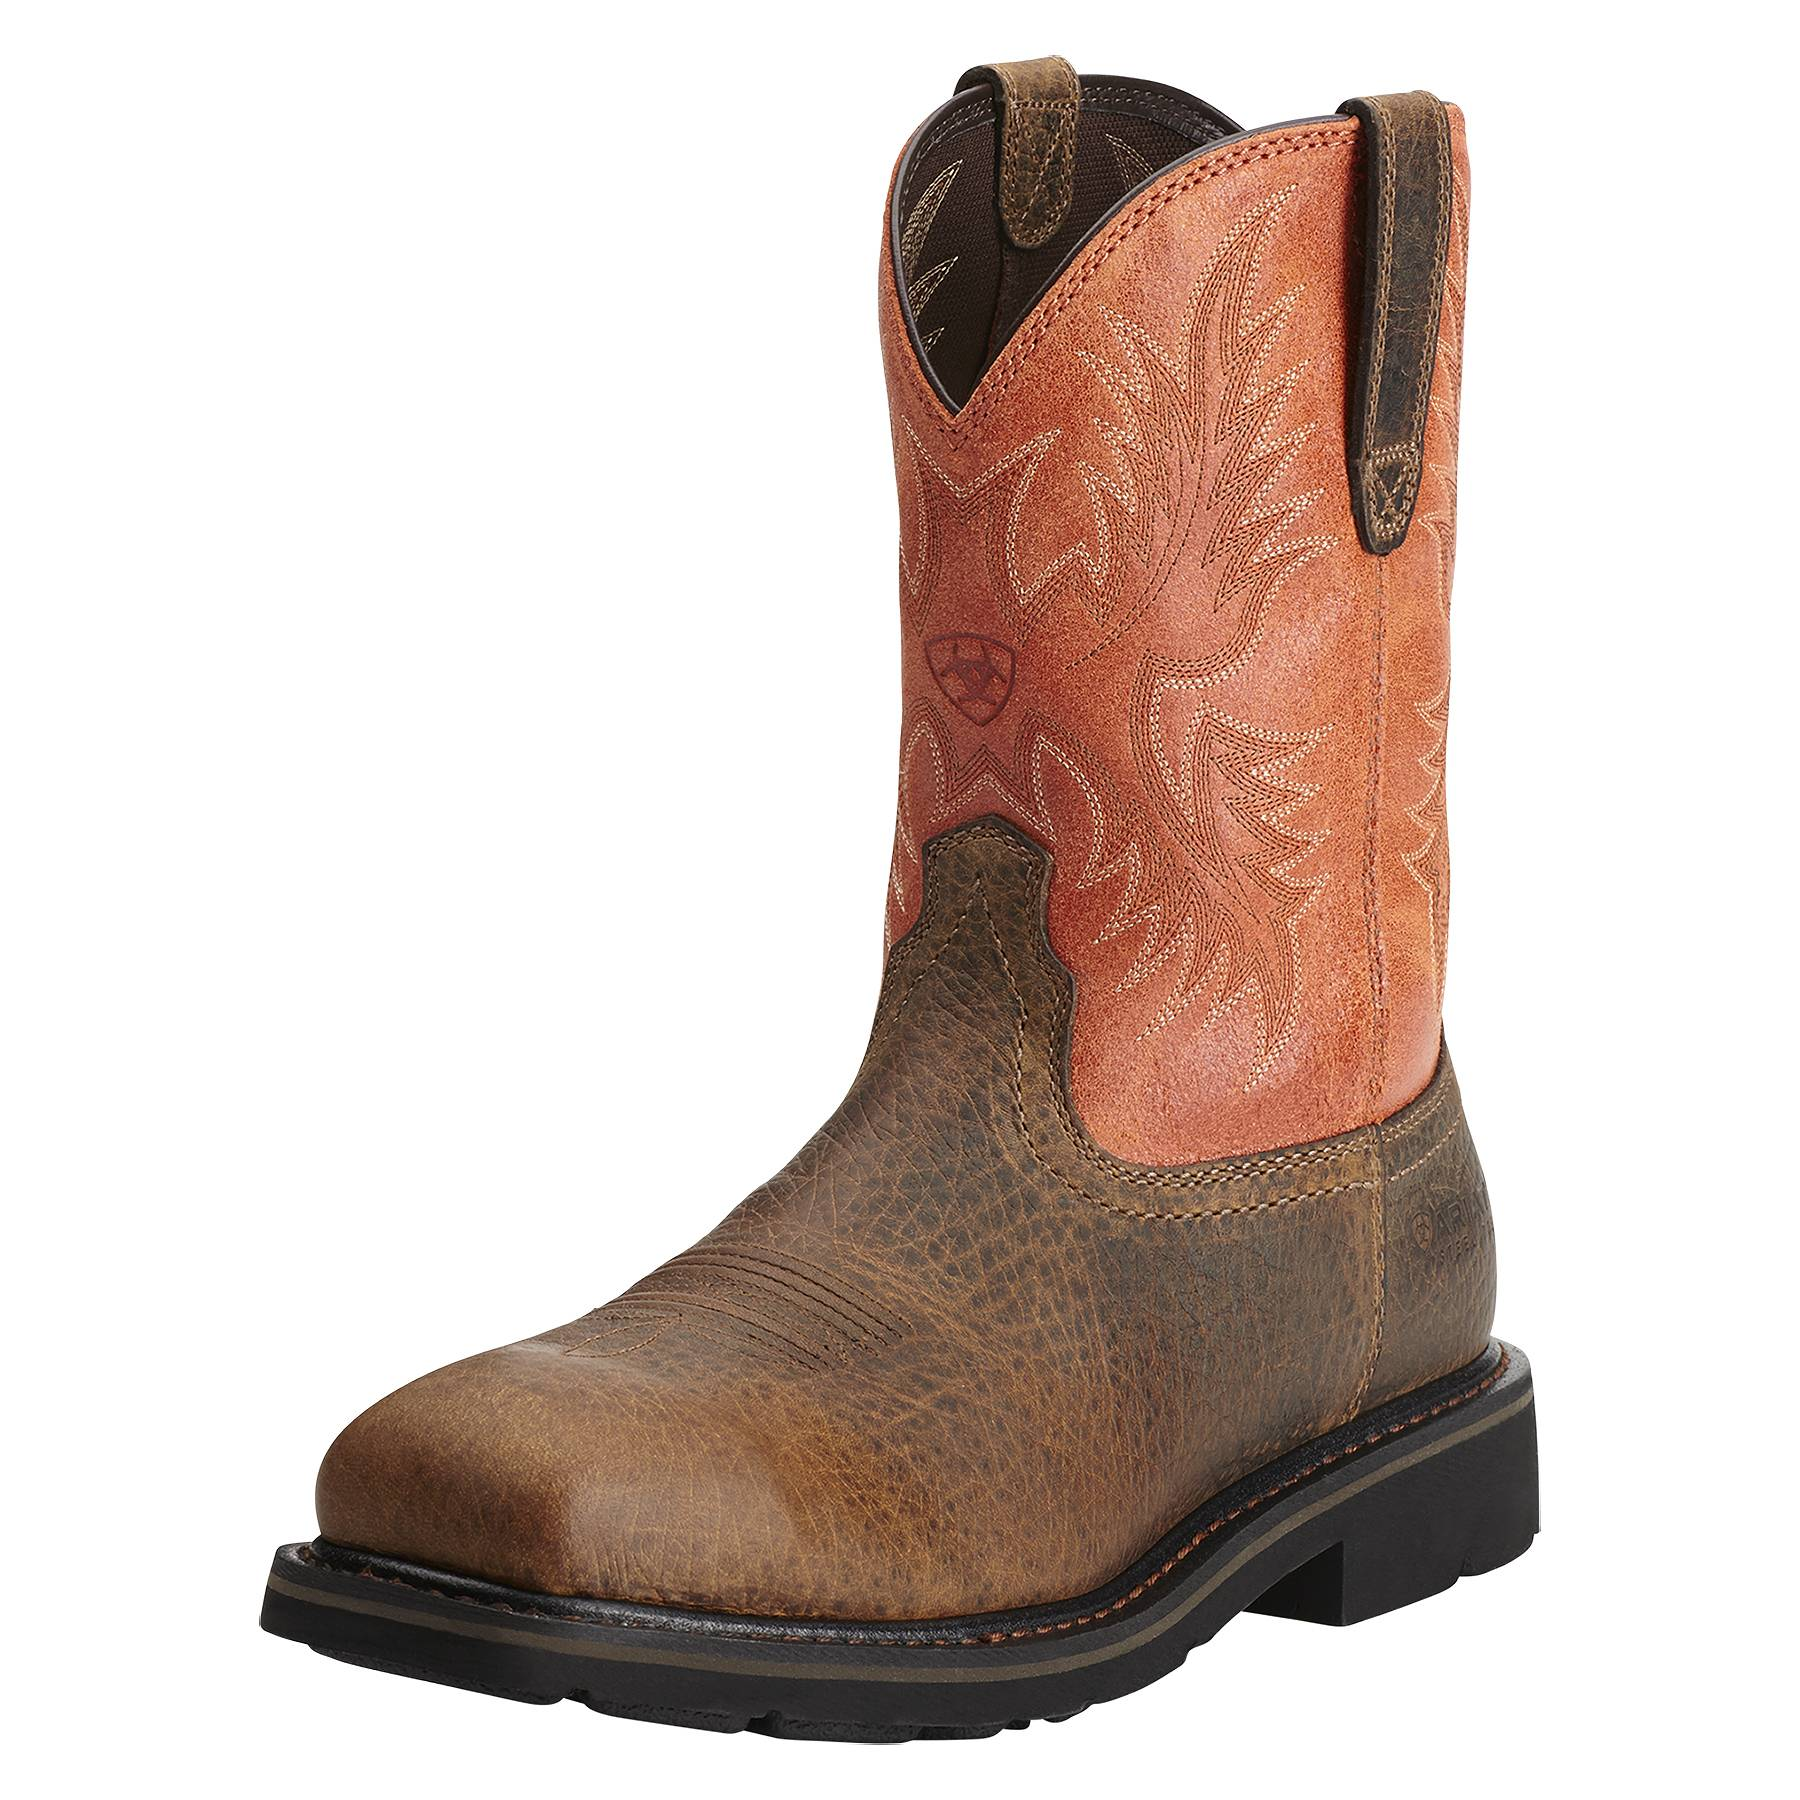 Ariat Men's Sierra Wide Square Toe Steel Toe